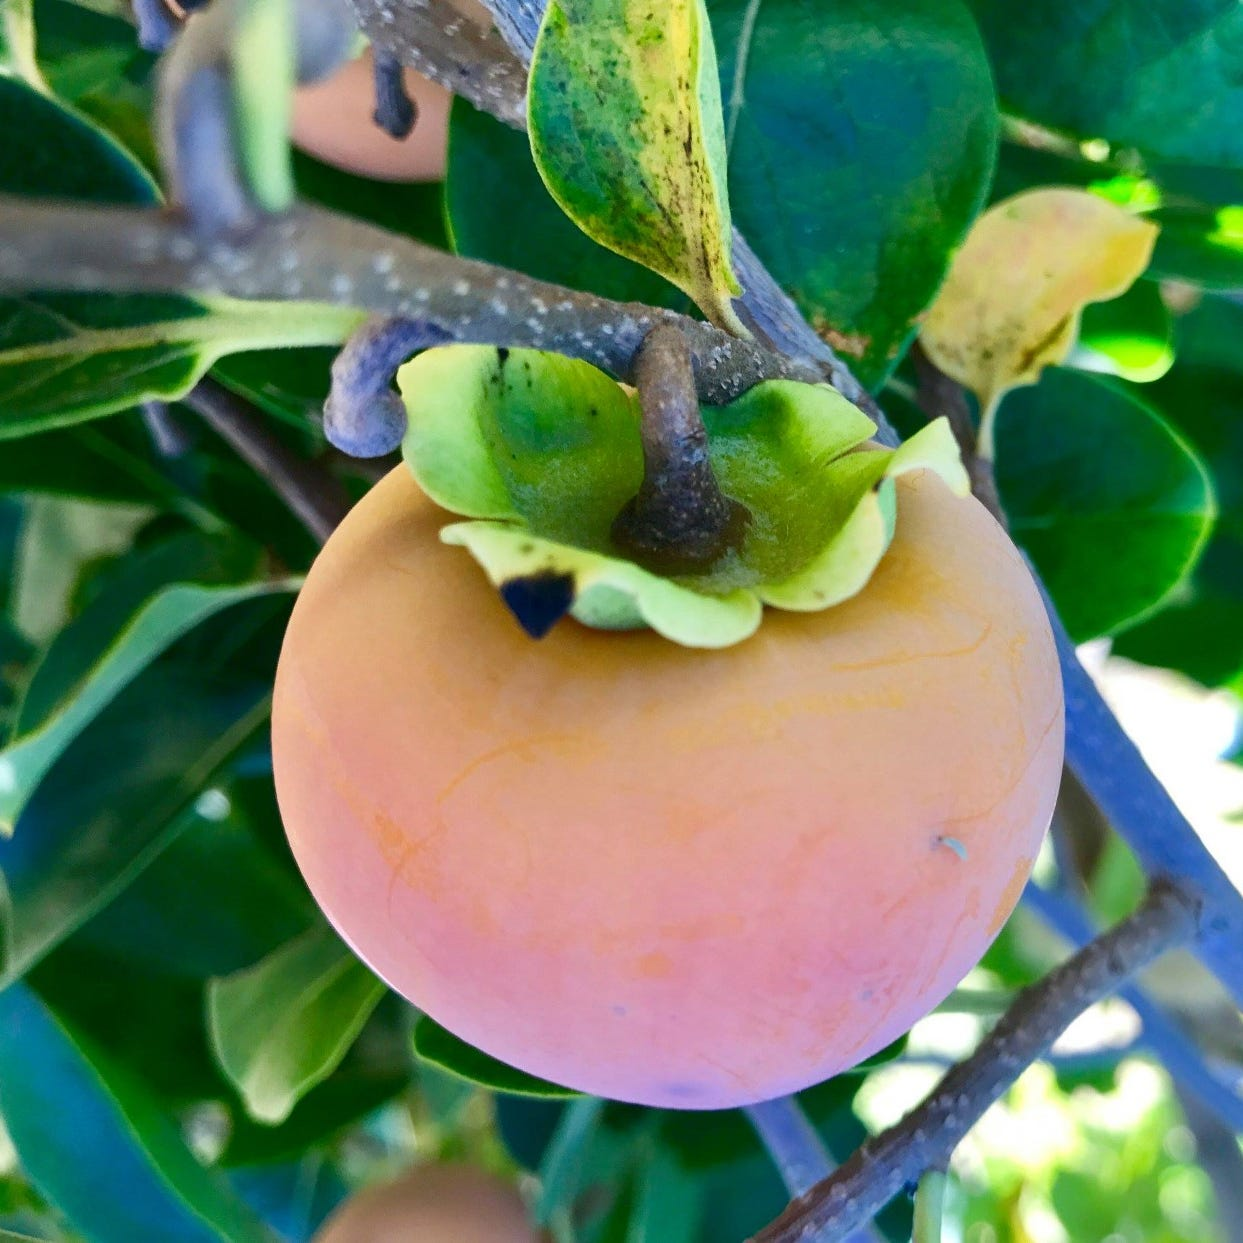 What fruit trees are recommended for my area?